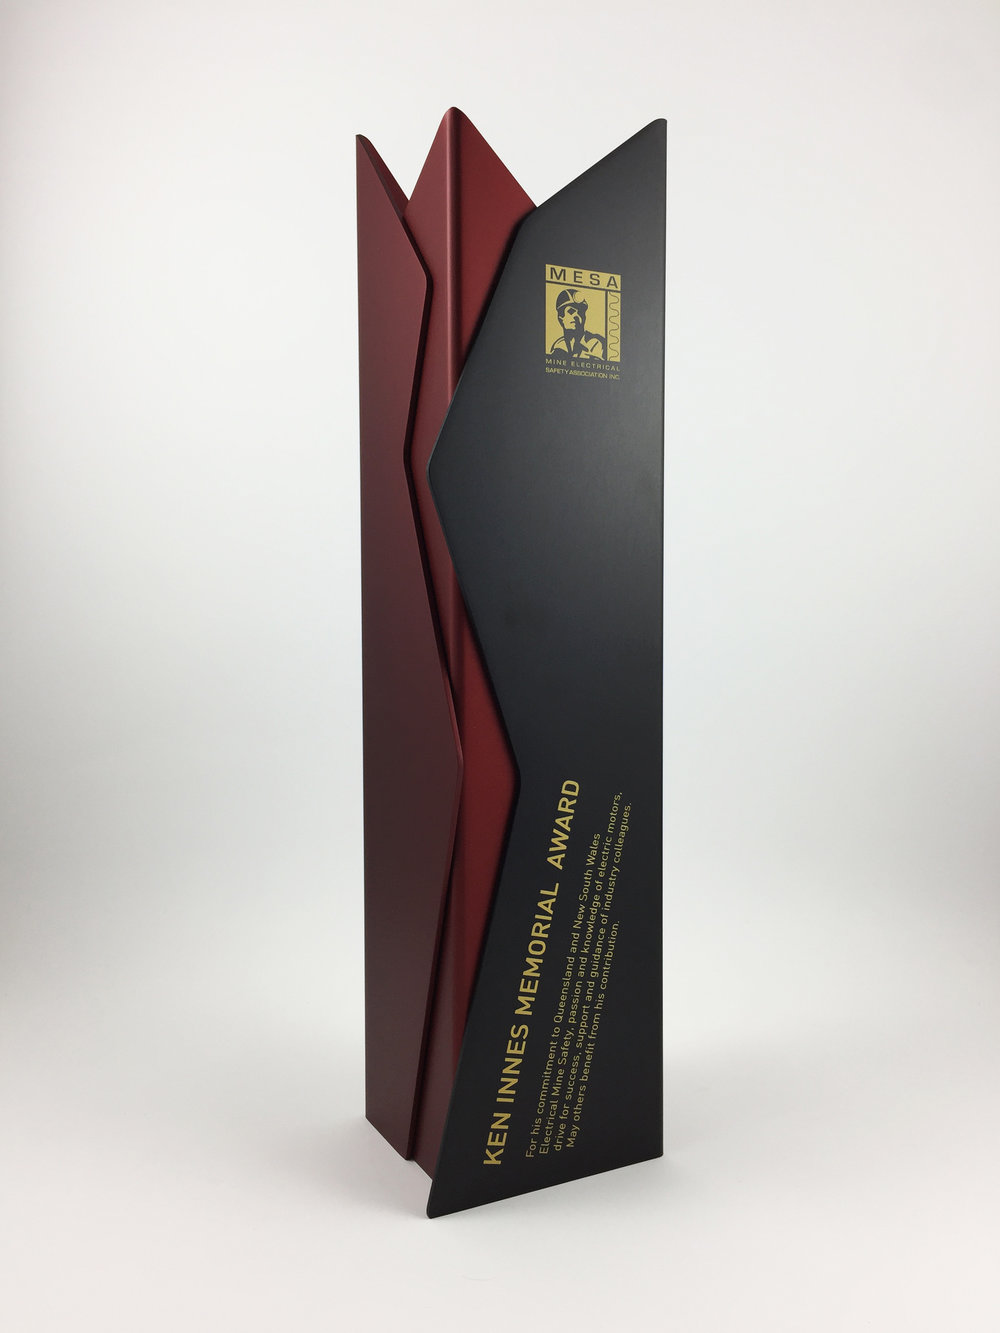 mesa-aluminium-trophy-awards-02.jpg